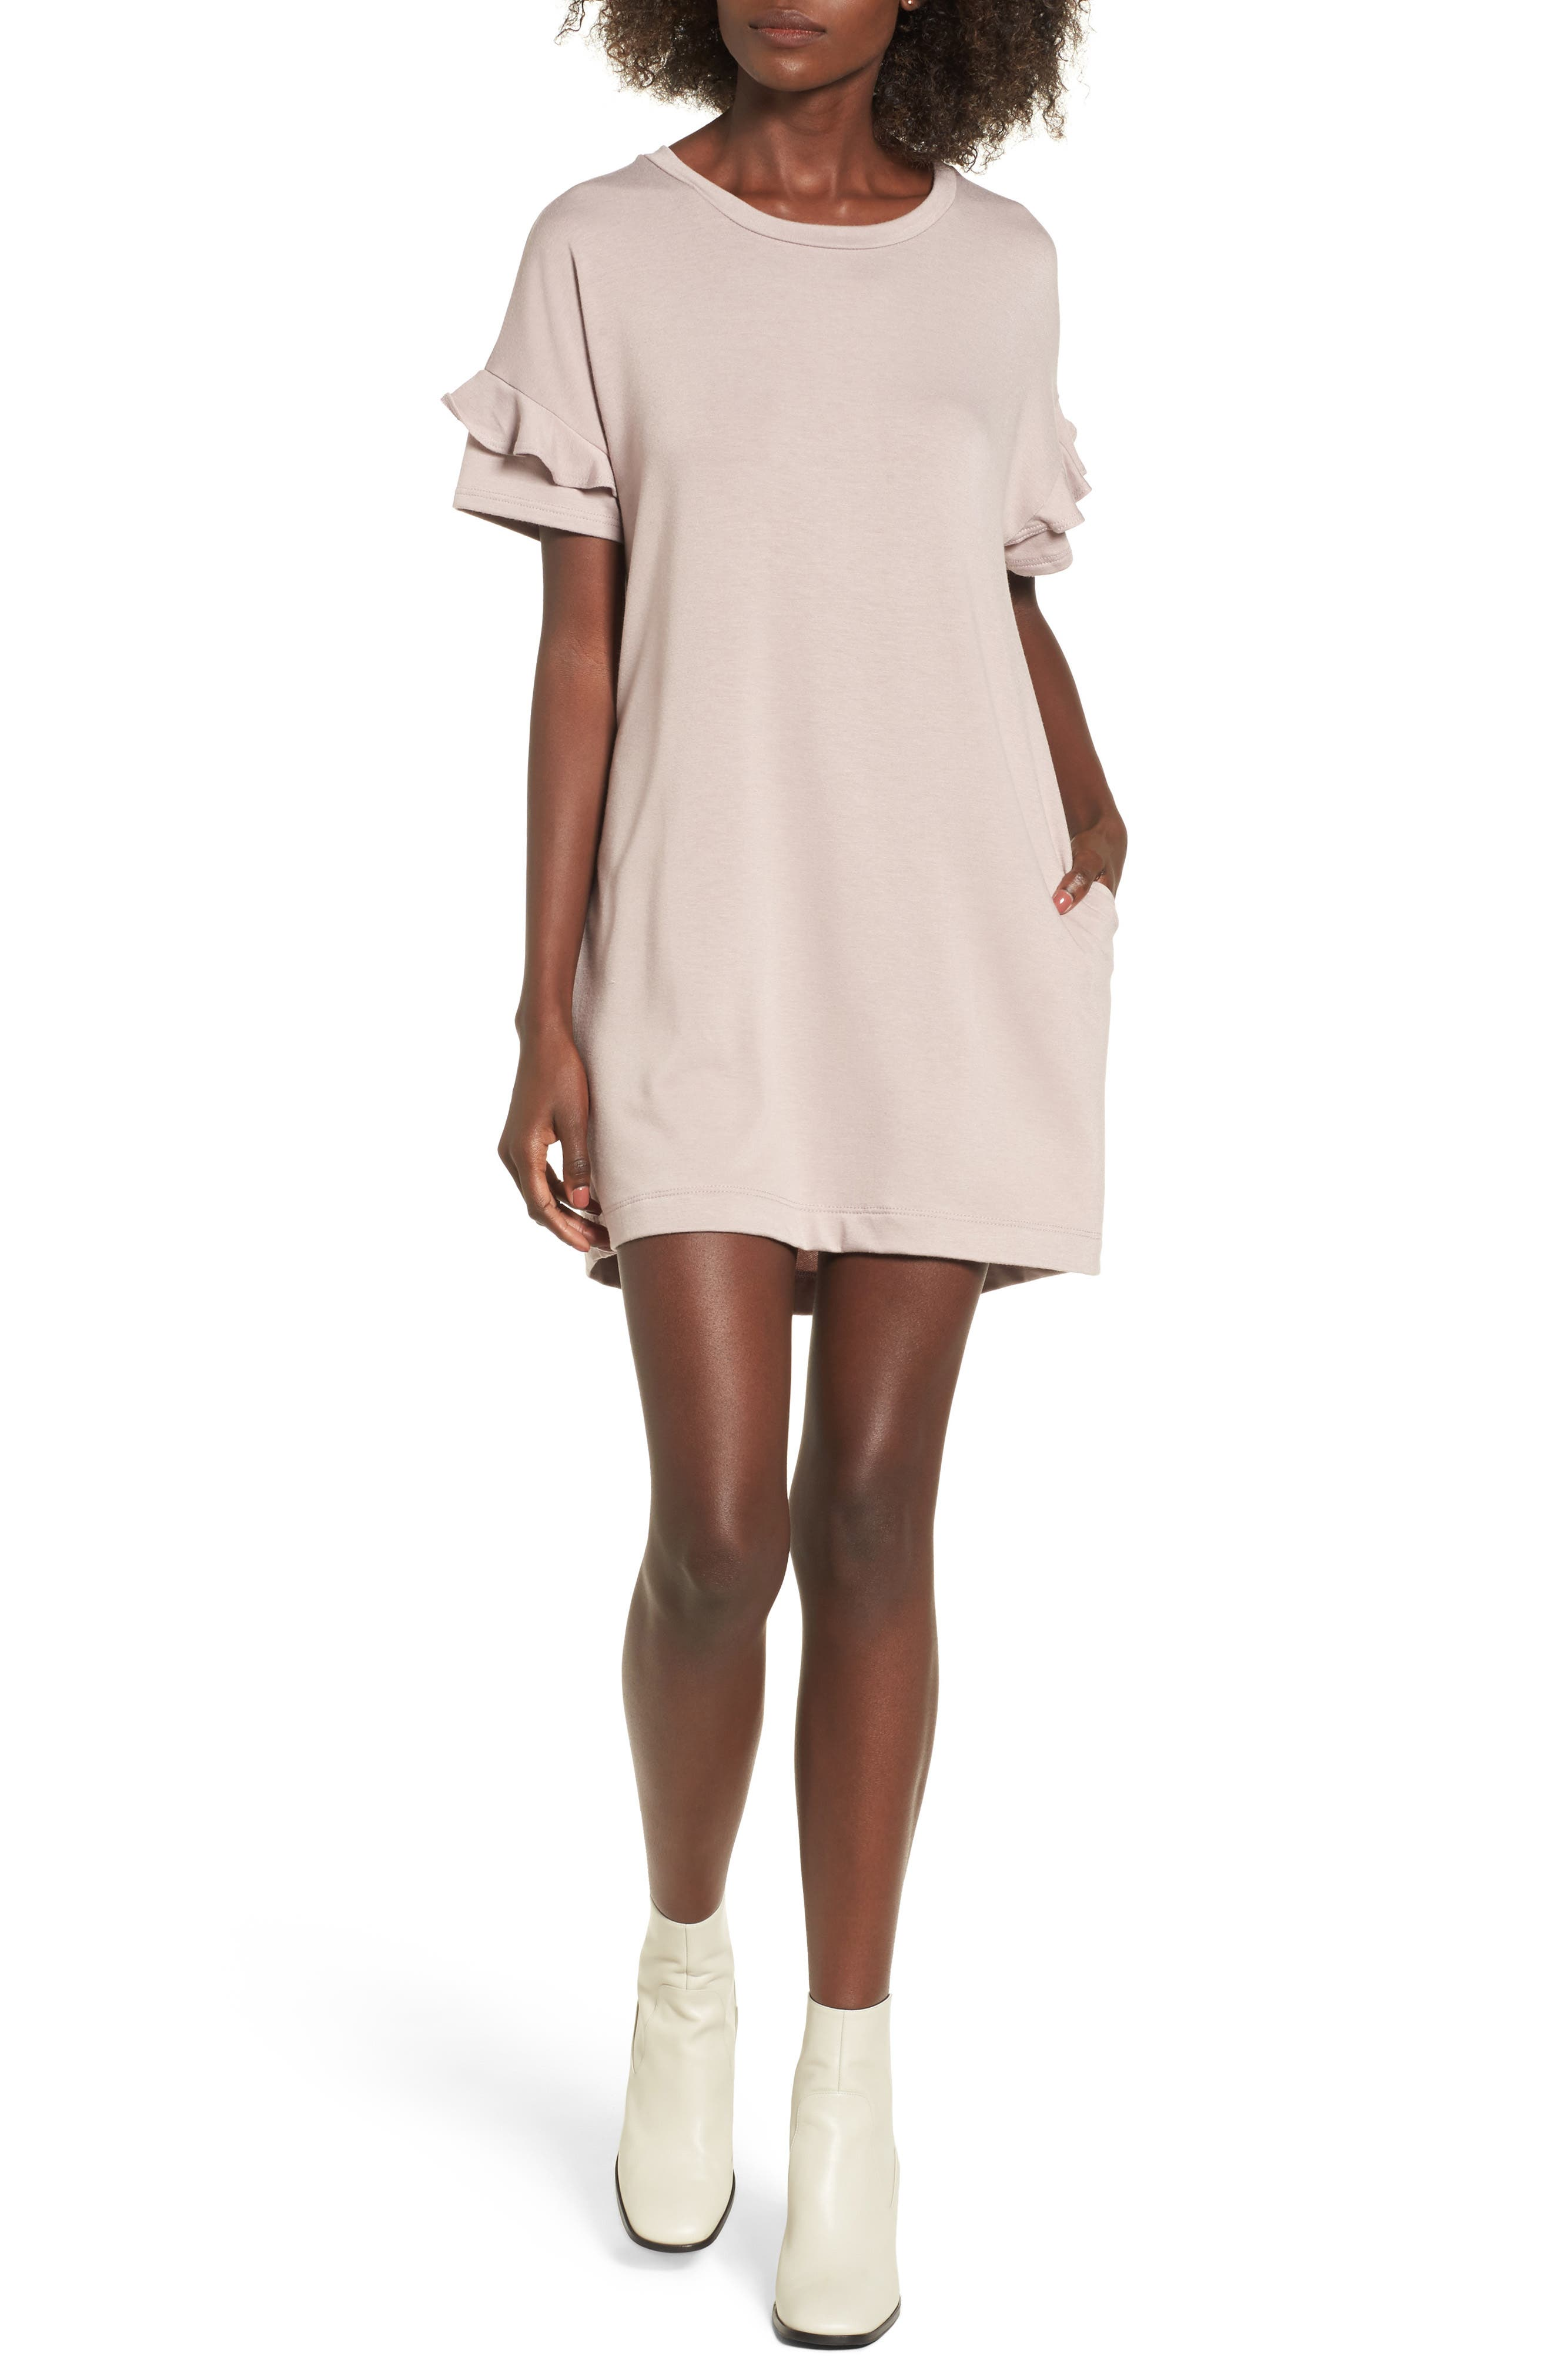 Main Image - Ruffle Sleeve T-Shirt Dress